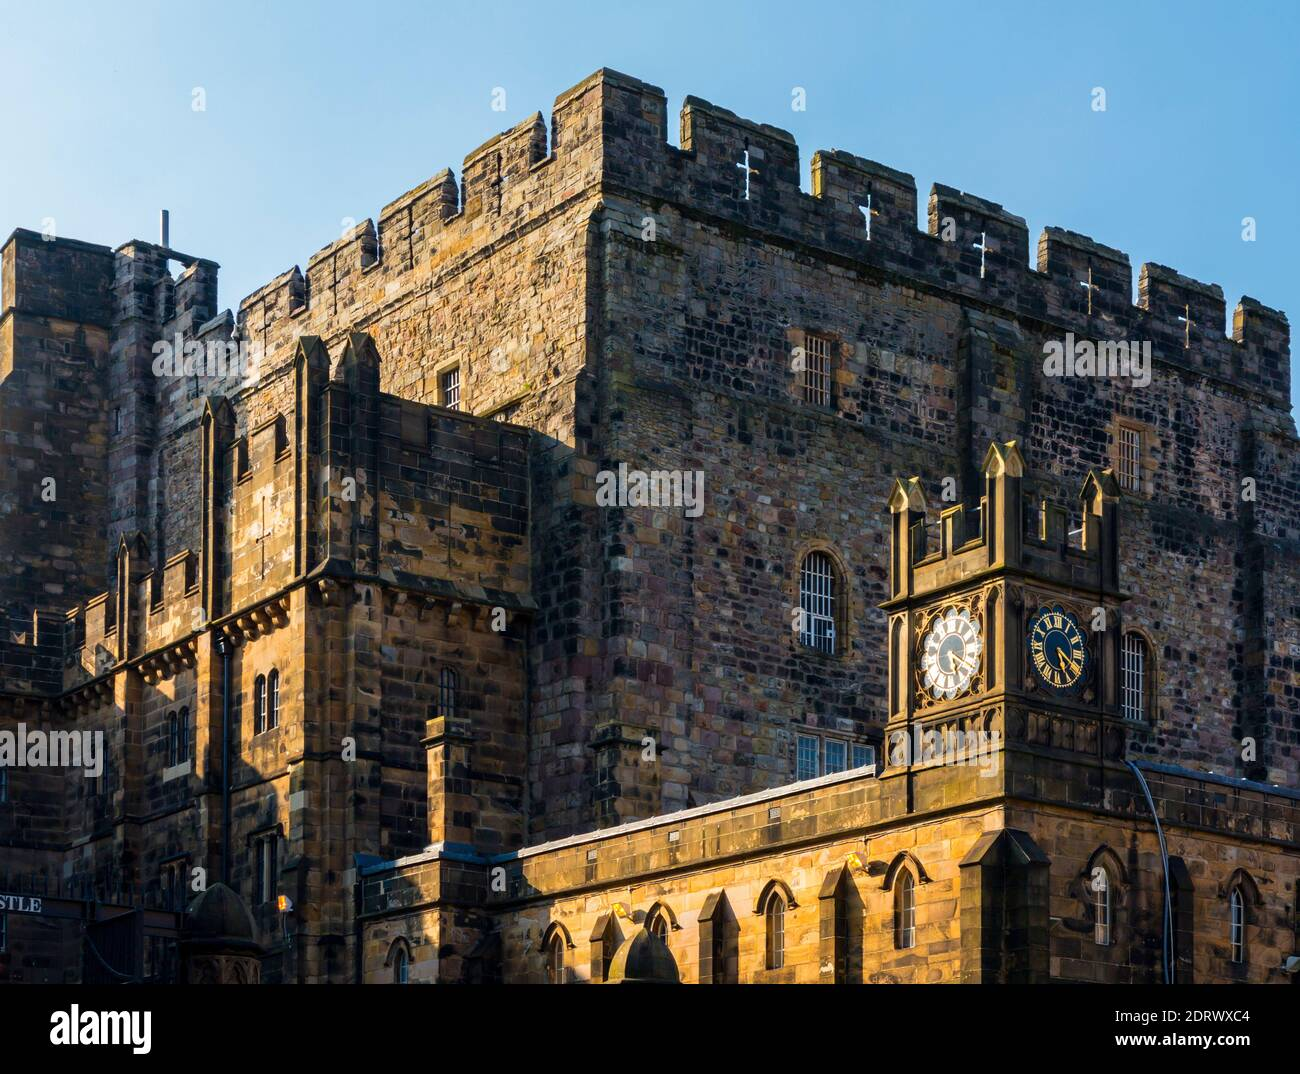 The medieval Keep and clock tower at Lancaster Castle in the City of Lancashire England UK Stock Photo